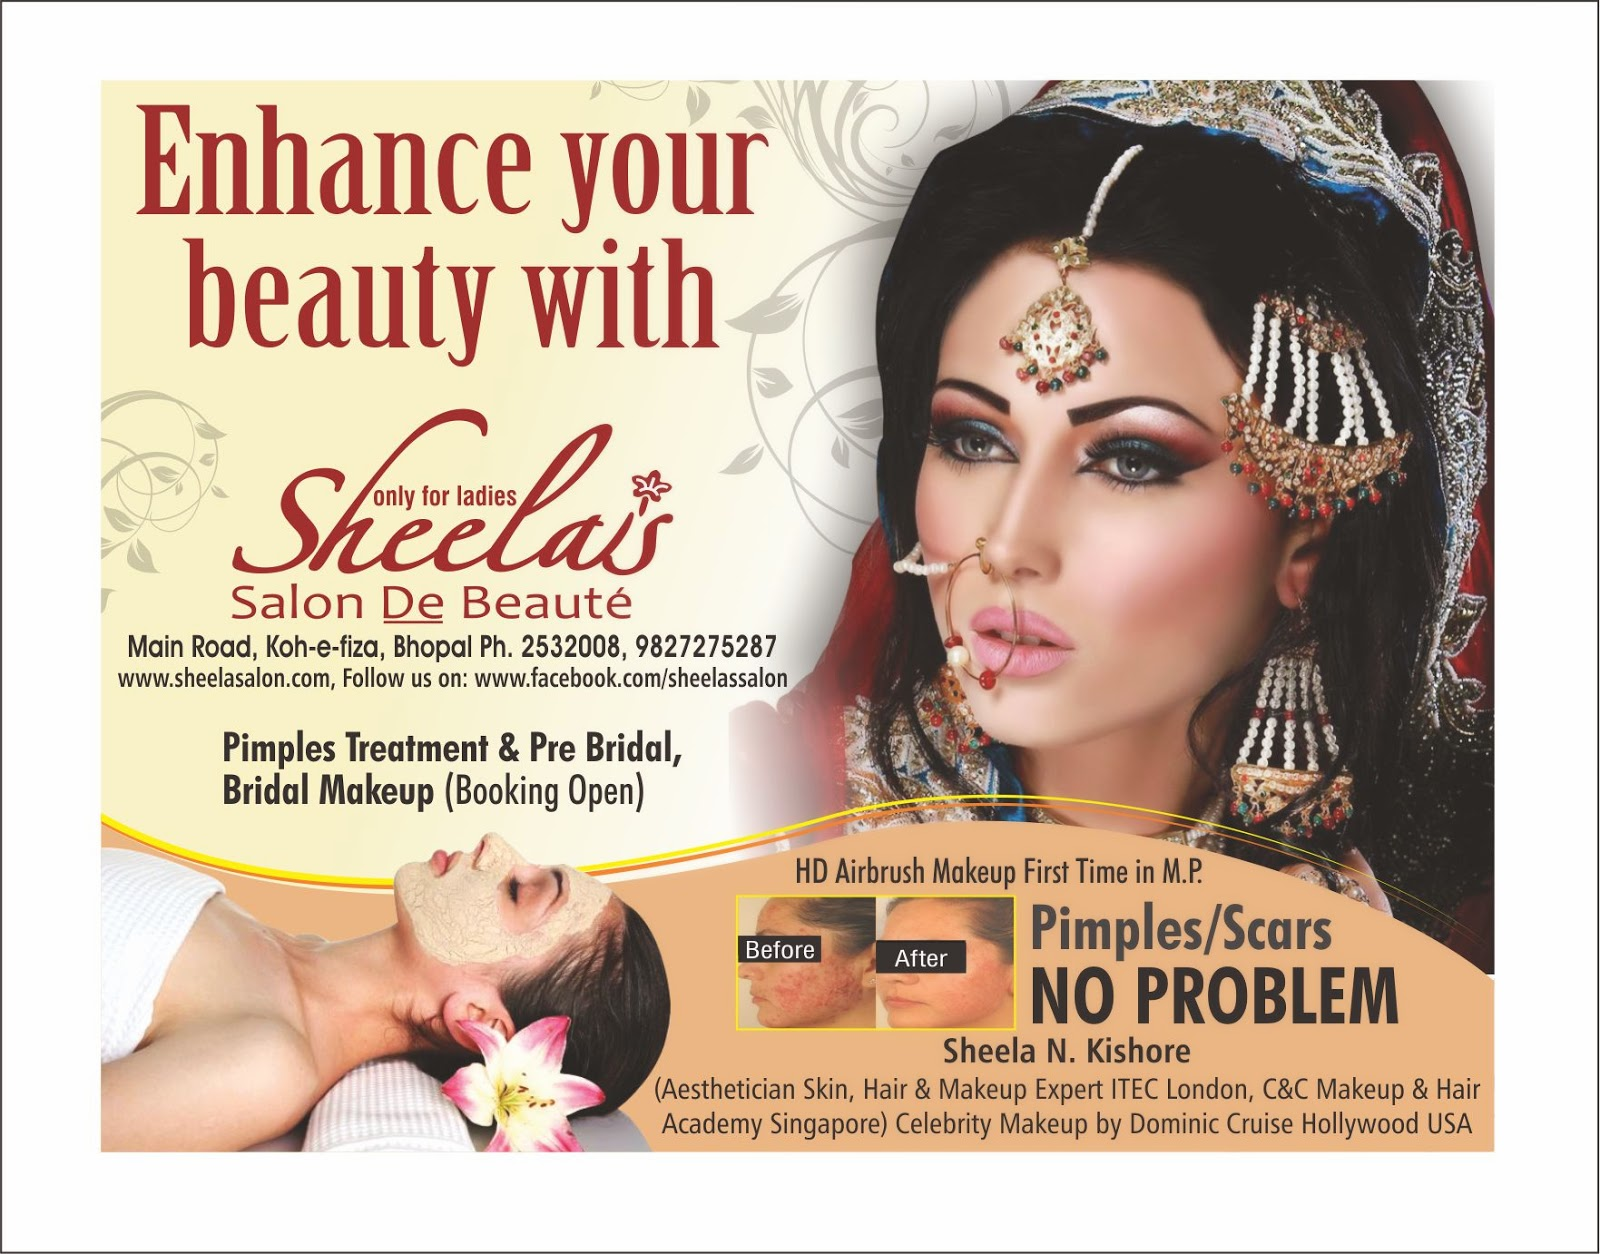 sheela's salon de beaute